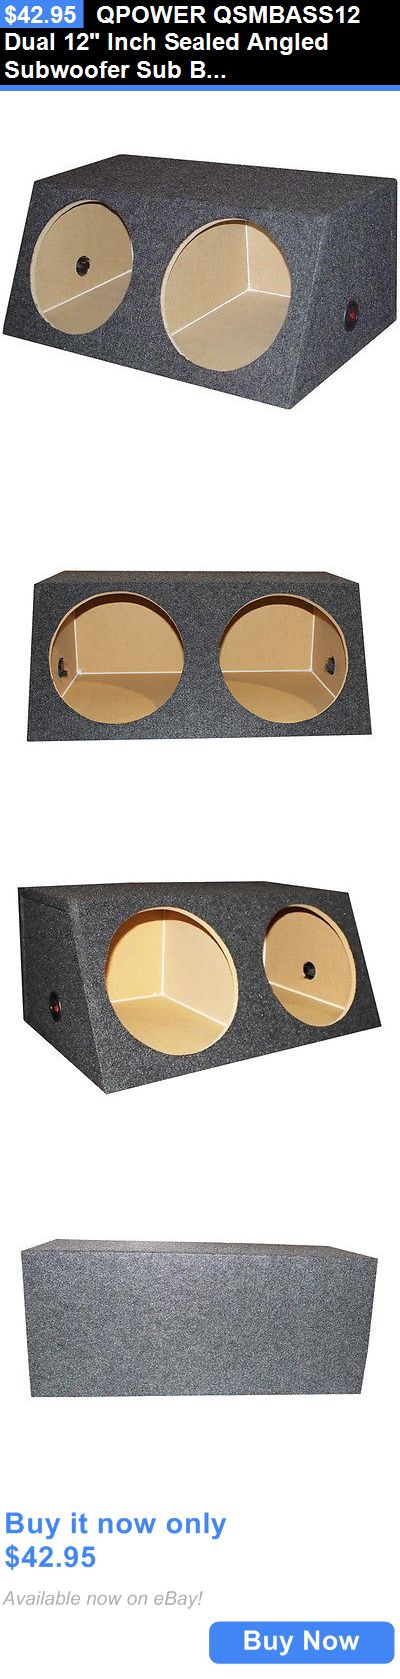 Speaker Sub Enclosures: Qpower Qsmbass12 Dual 12 Inch Sealed Angled Subwoofer Sub Box Speaker Enclosure BUY IT NOW ONLY: $42.95